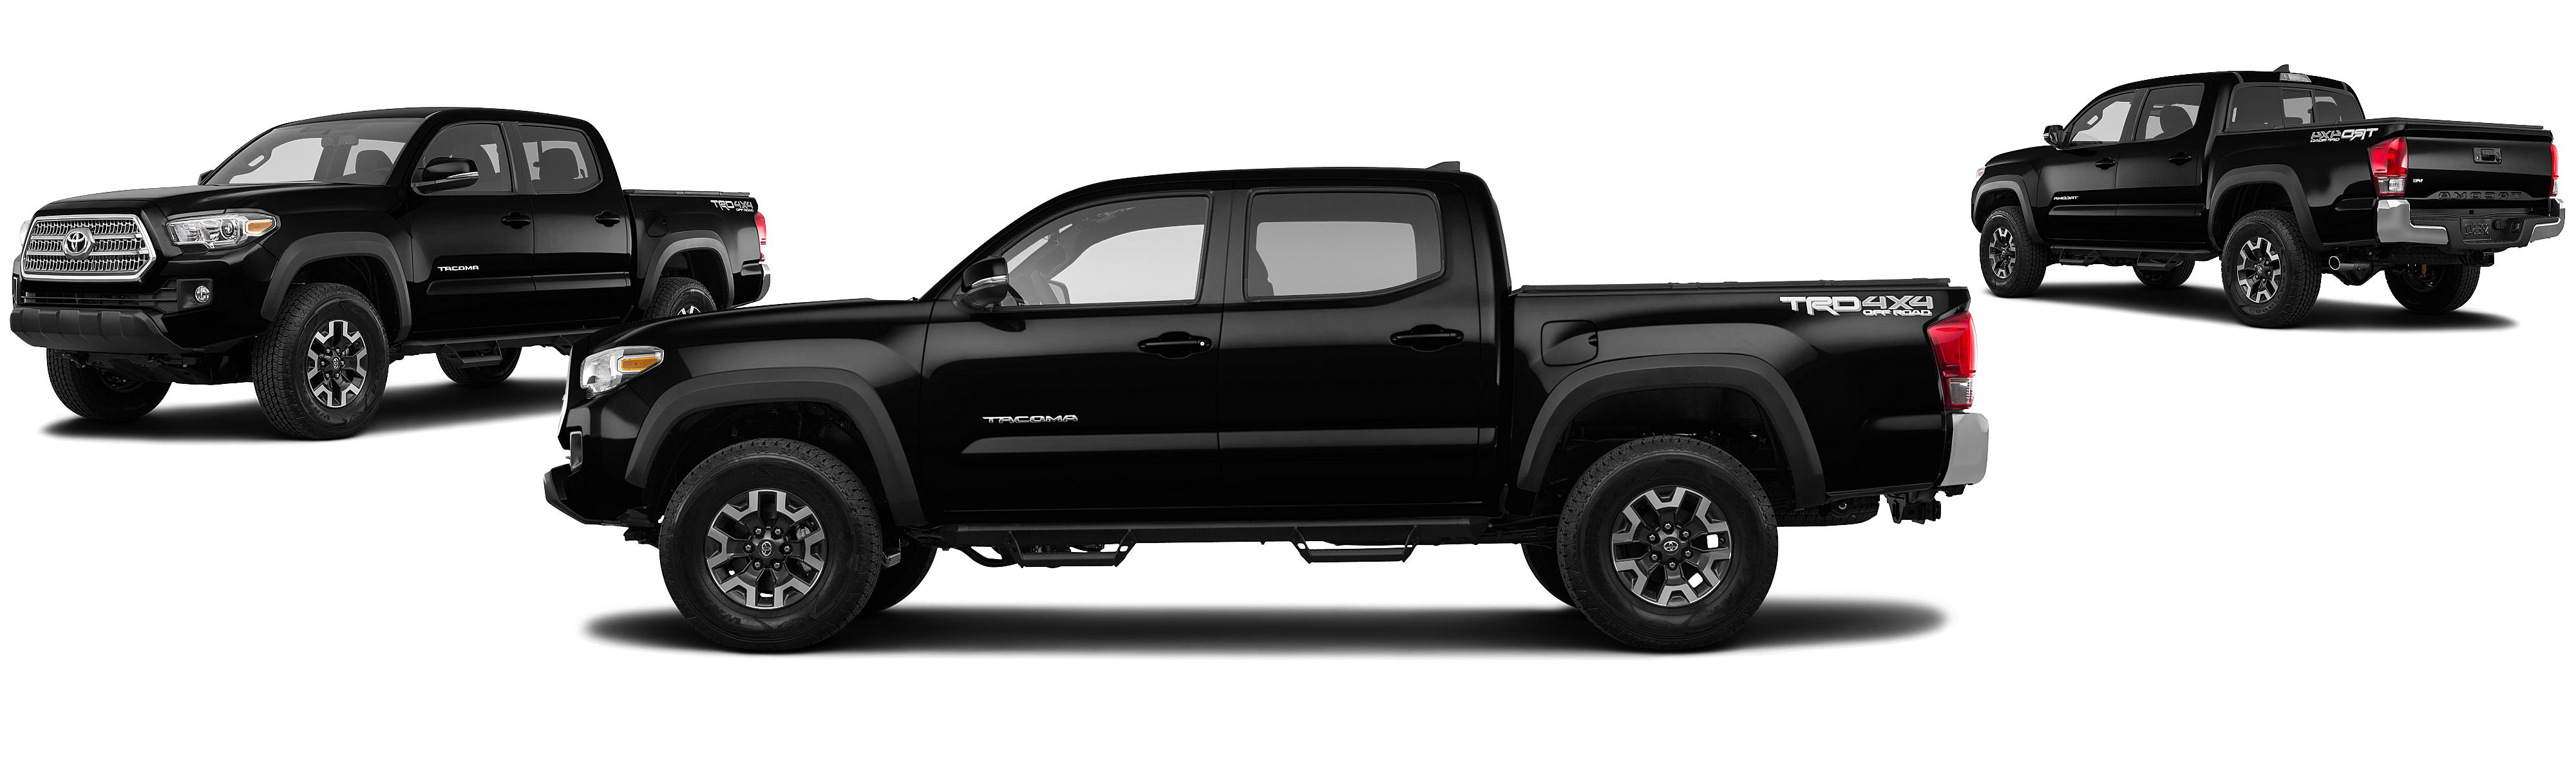 2017 Toyota Tacoma 4x2 Trd Off Road 4dr Double Cab 5 0 Ft Sb Research Groovecar